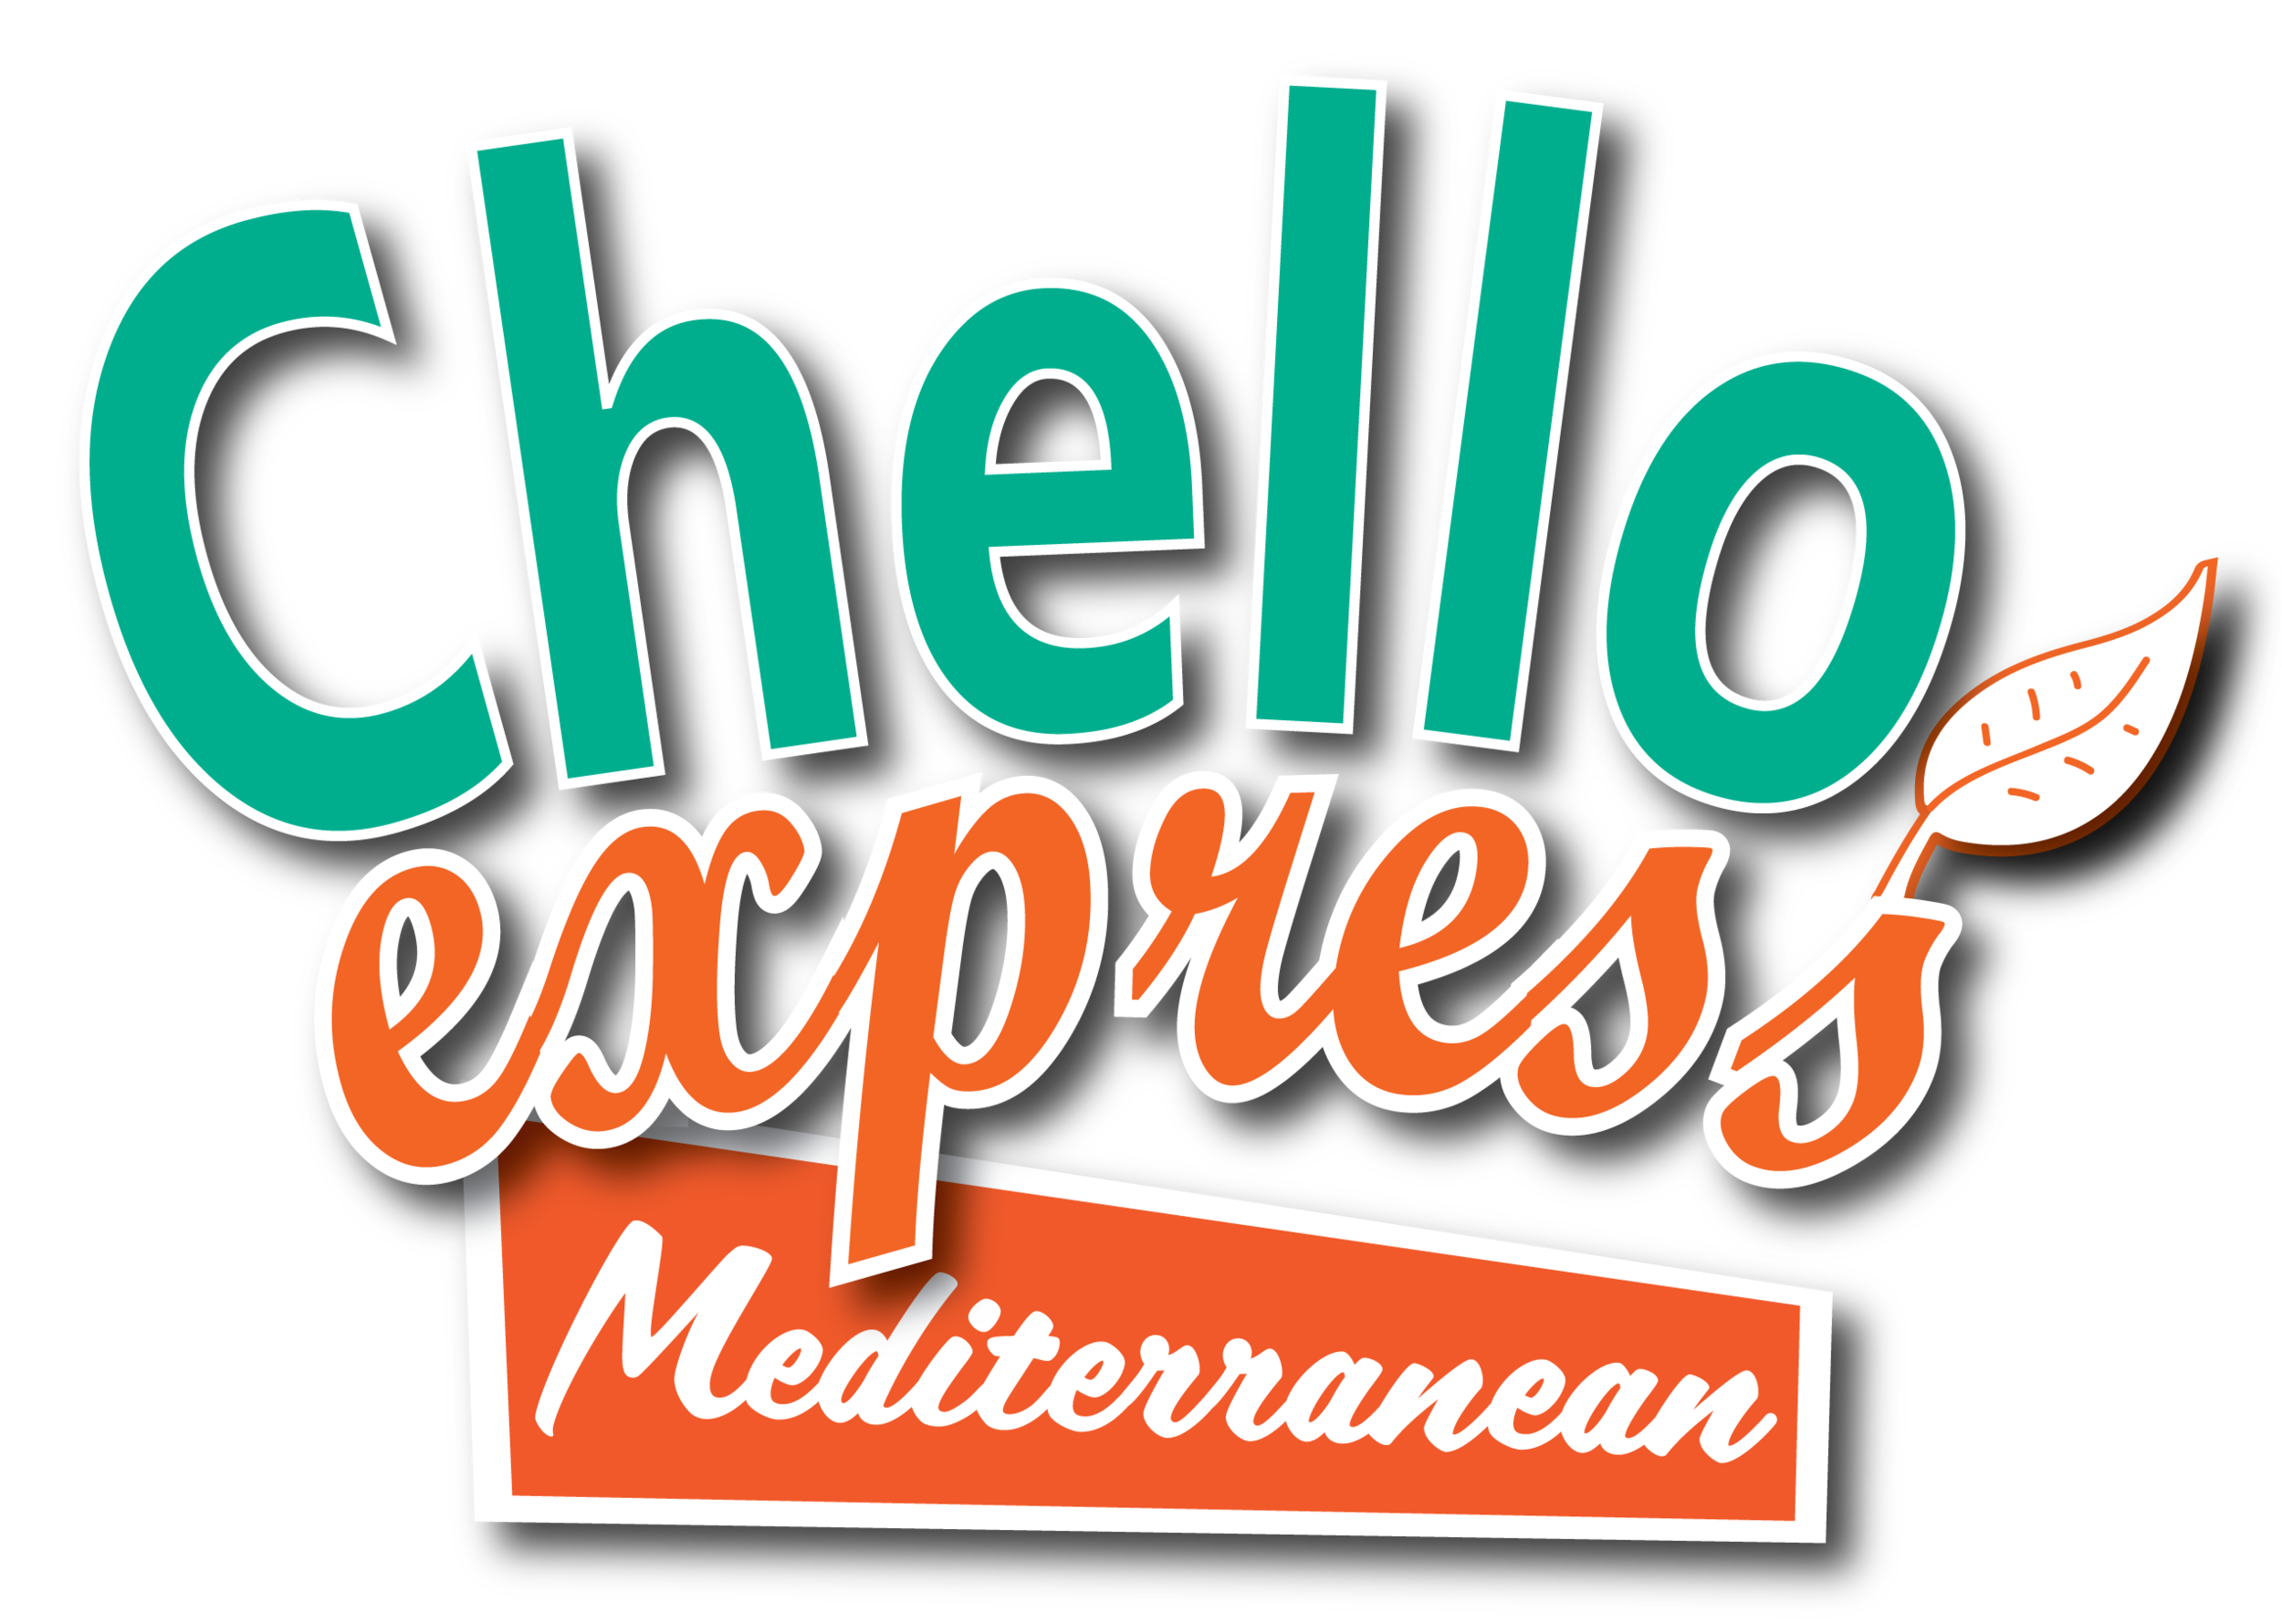 WE ARE SO EXCITED TO BE OPEN ON THE WEST SIDE! - Stop by and give us a try! We have a counter in our sister-restaurant Pizza 9 located off Coors & I-40 (2641 Coors Blvd NW E, Albuquerque, NM 87120)Never tried Chello before? Now is the time to #SayHelloToChelloWould you like to call in an order for pick-up or delivery?Give us a call at 505-831-1119Online Ordering for Chello Express is not yet available.